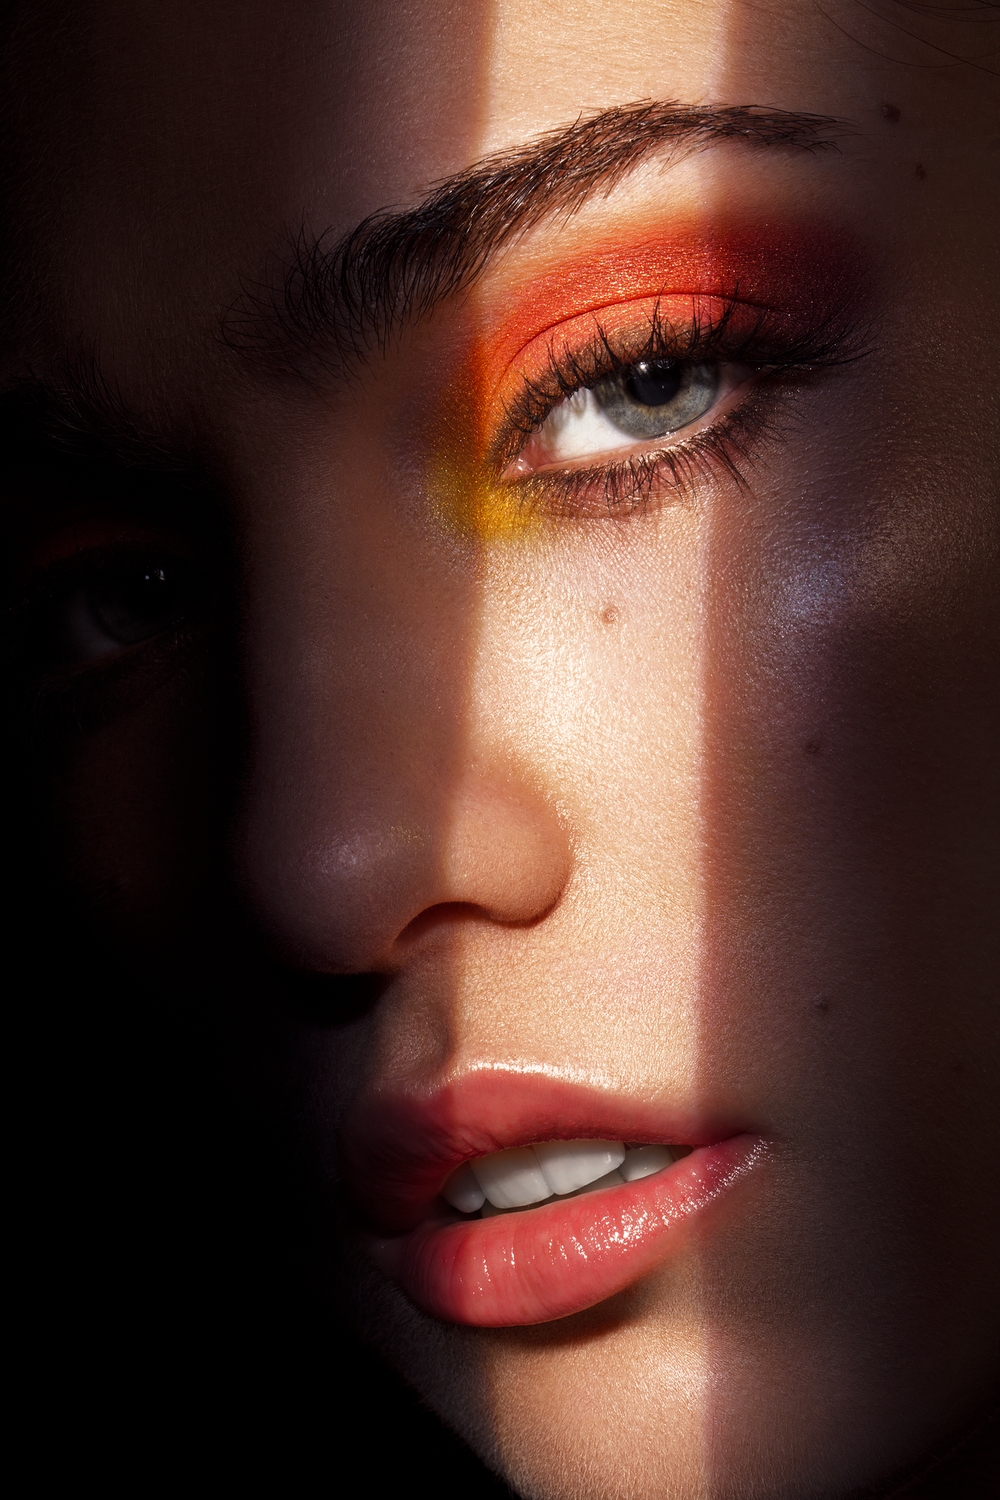 beauty_photographer_joao_ngalia_editorial_dscene.jpg